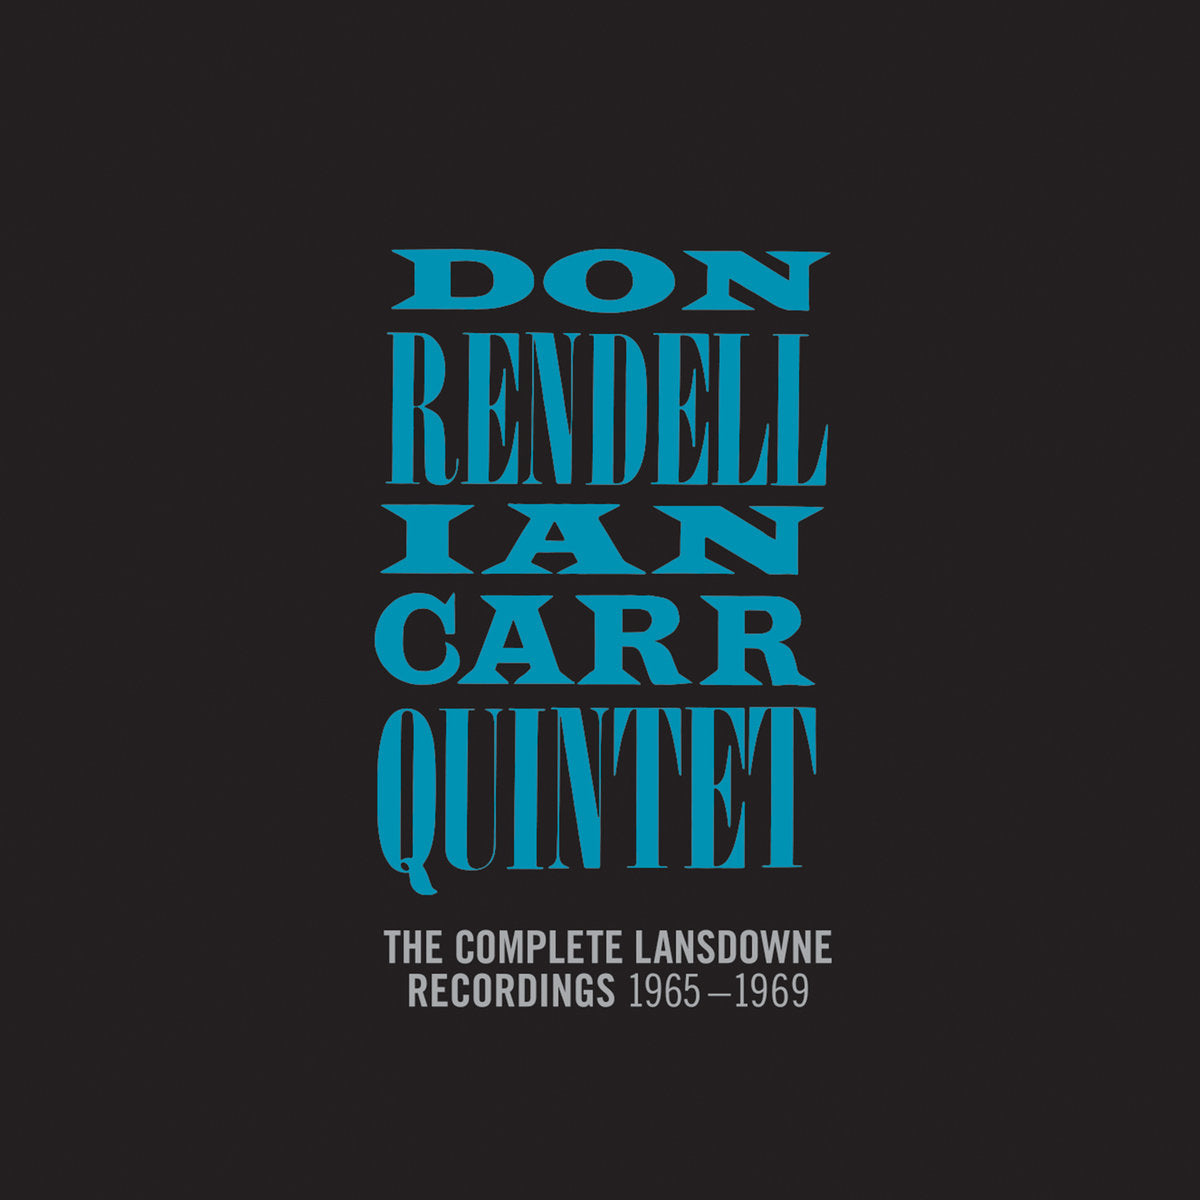 The Don Rendell / Ian Carr Quintet - The Complete Lansdowne Recordings: 1965-1969 5LP